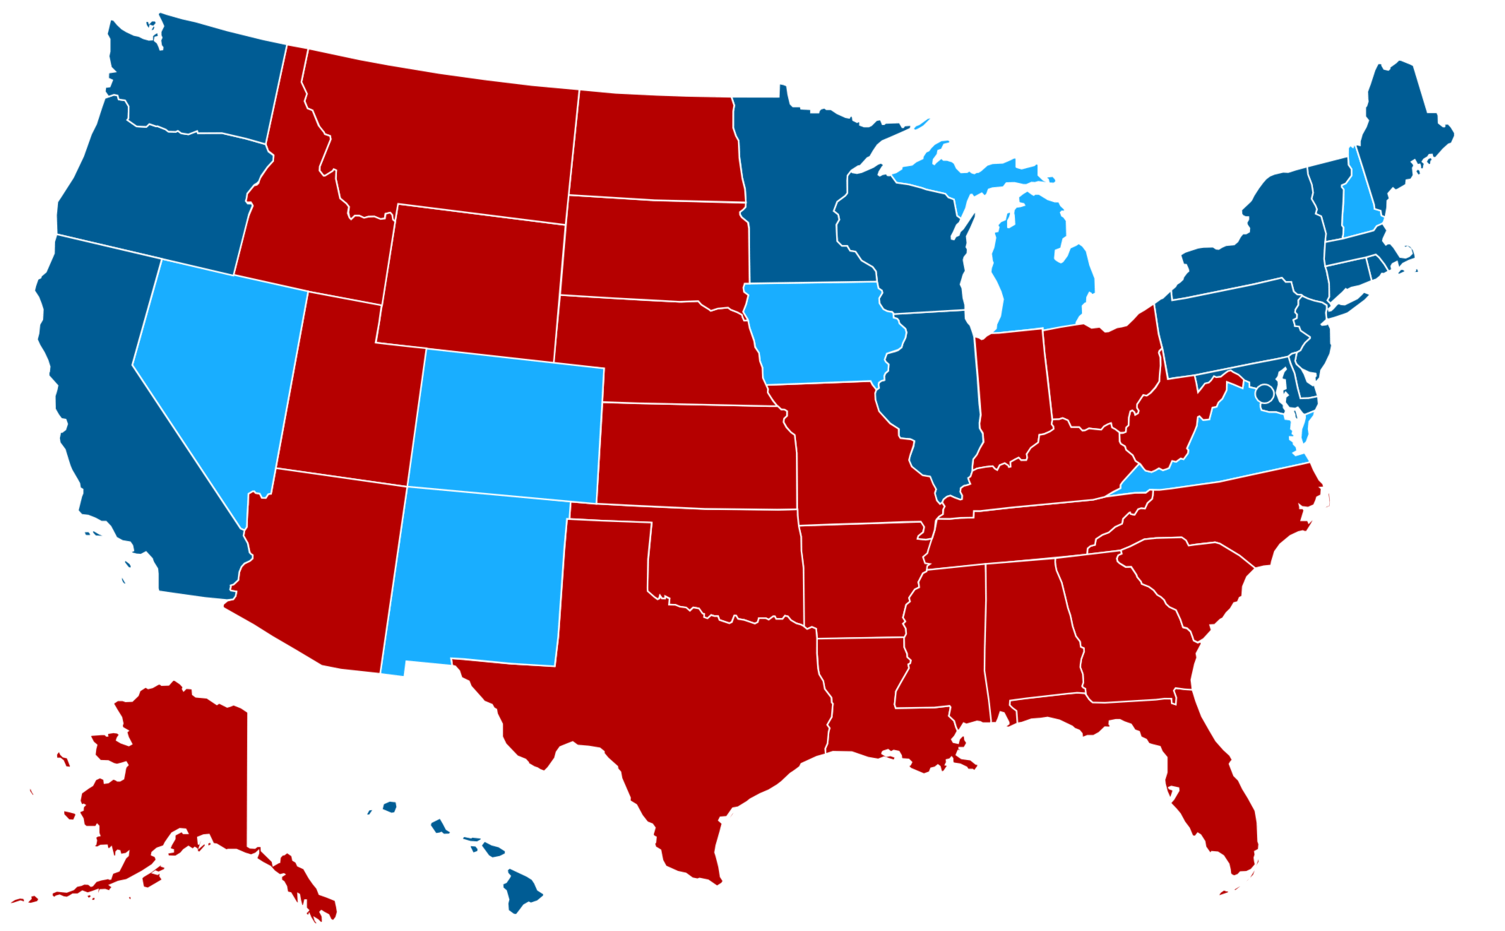 Electoral map of Rubio (red) versus Clinton (dark blue) and versus ...